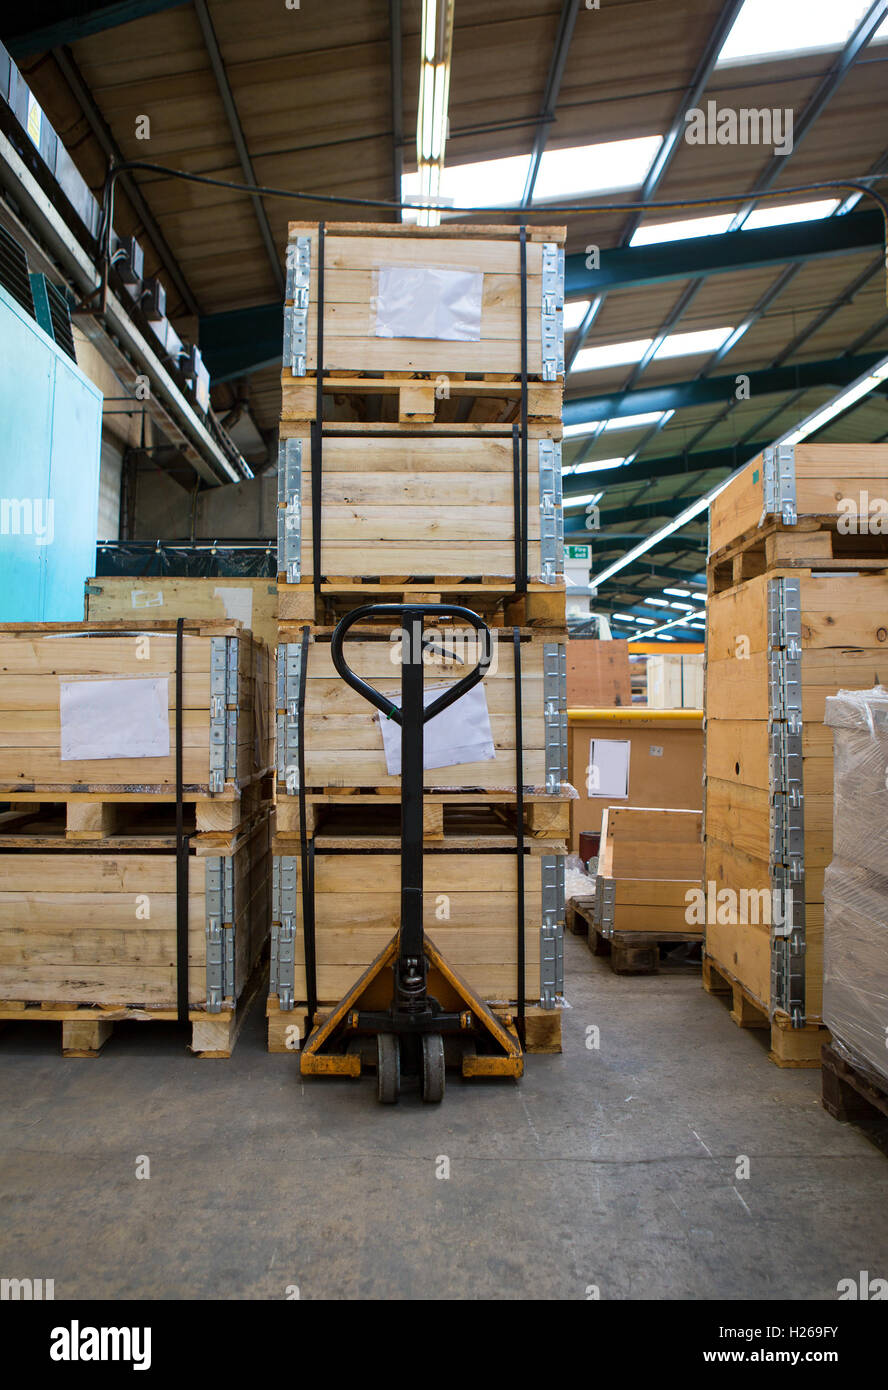 manual forklift pallet stacker truck equipment at warehouse stock